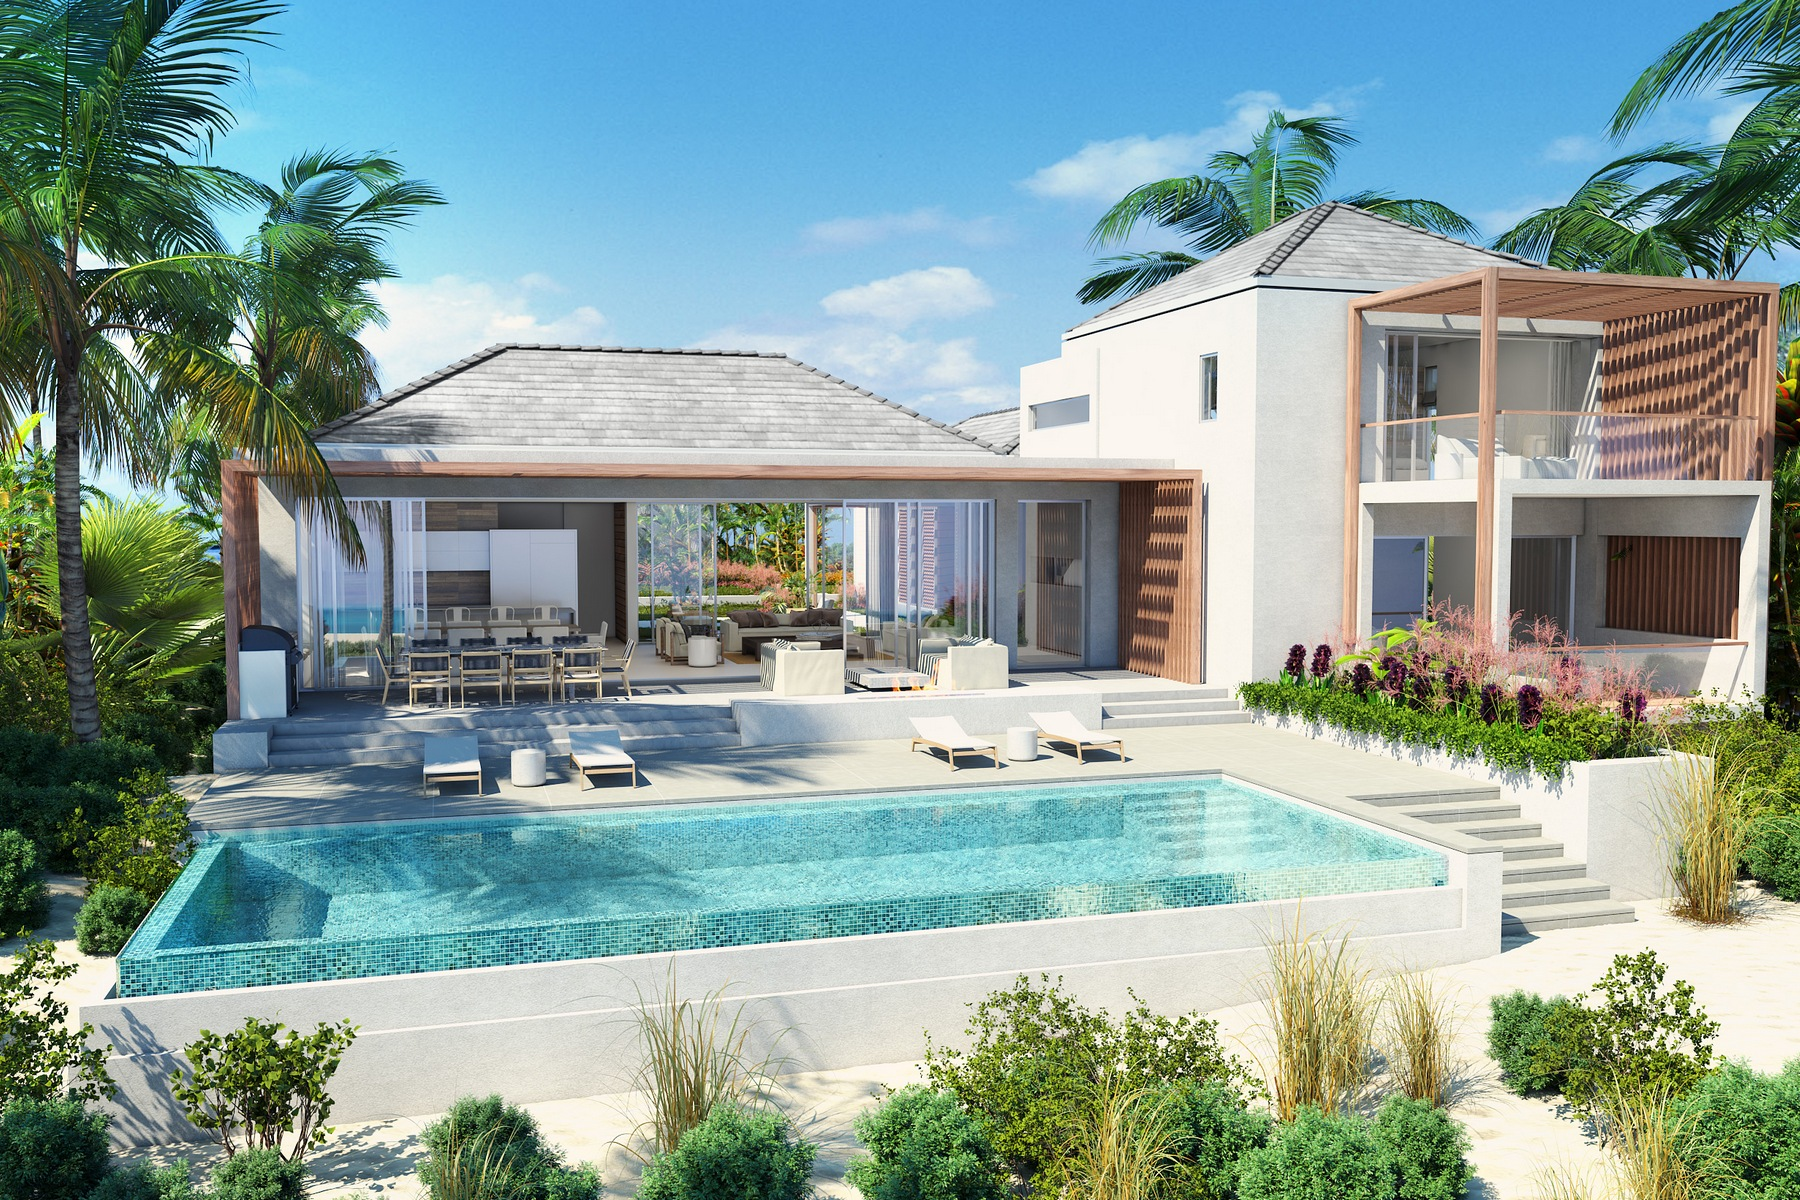 Single Family Home for Sale at BEACH ENCLAVE LONG BAY - Design One 4B Beachfront Long Bay, TCI Turks And Caicos Islands